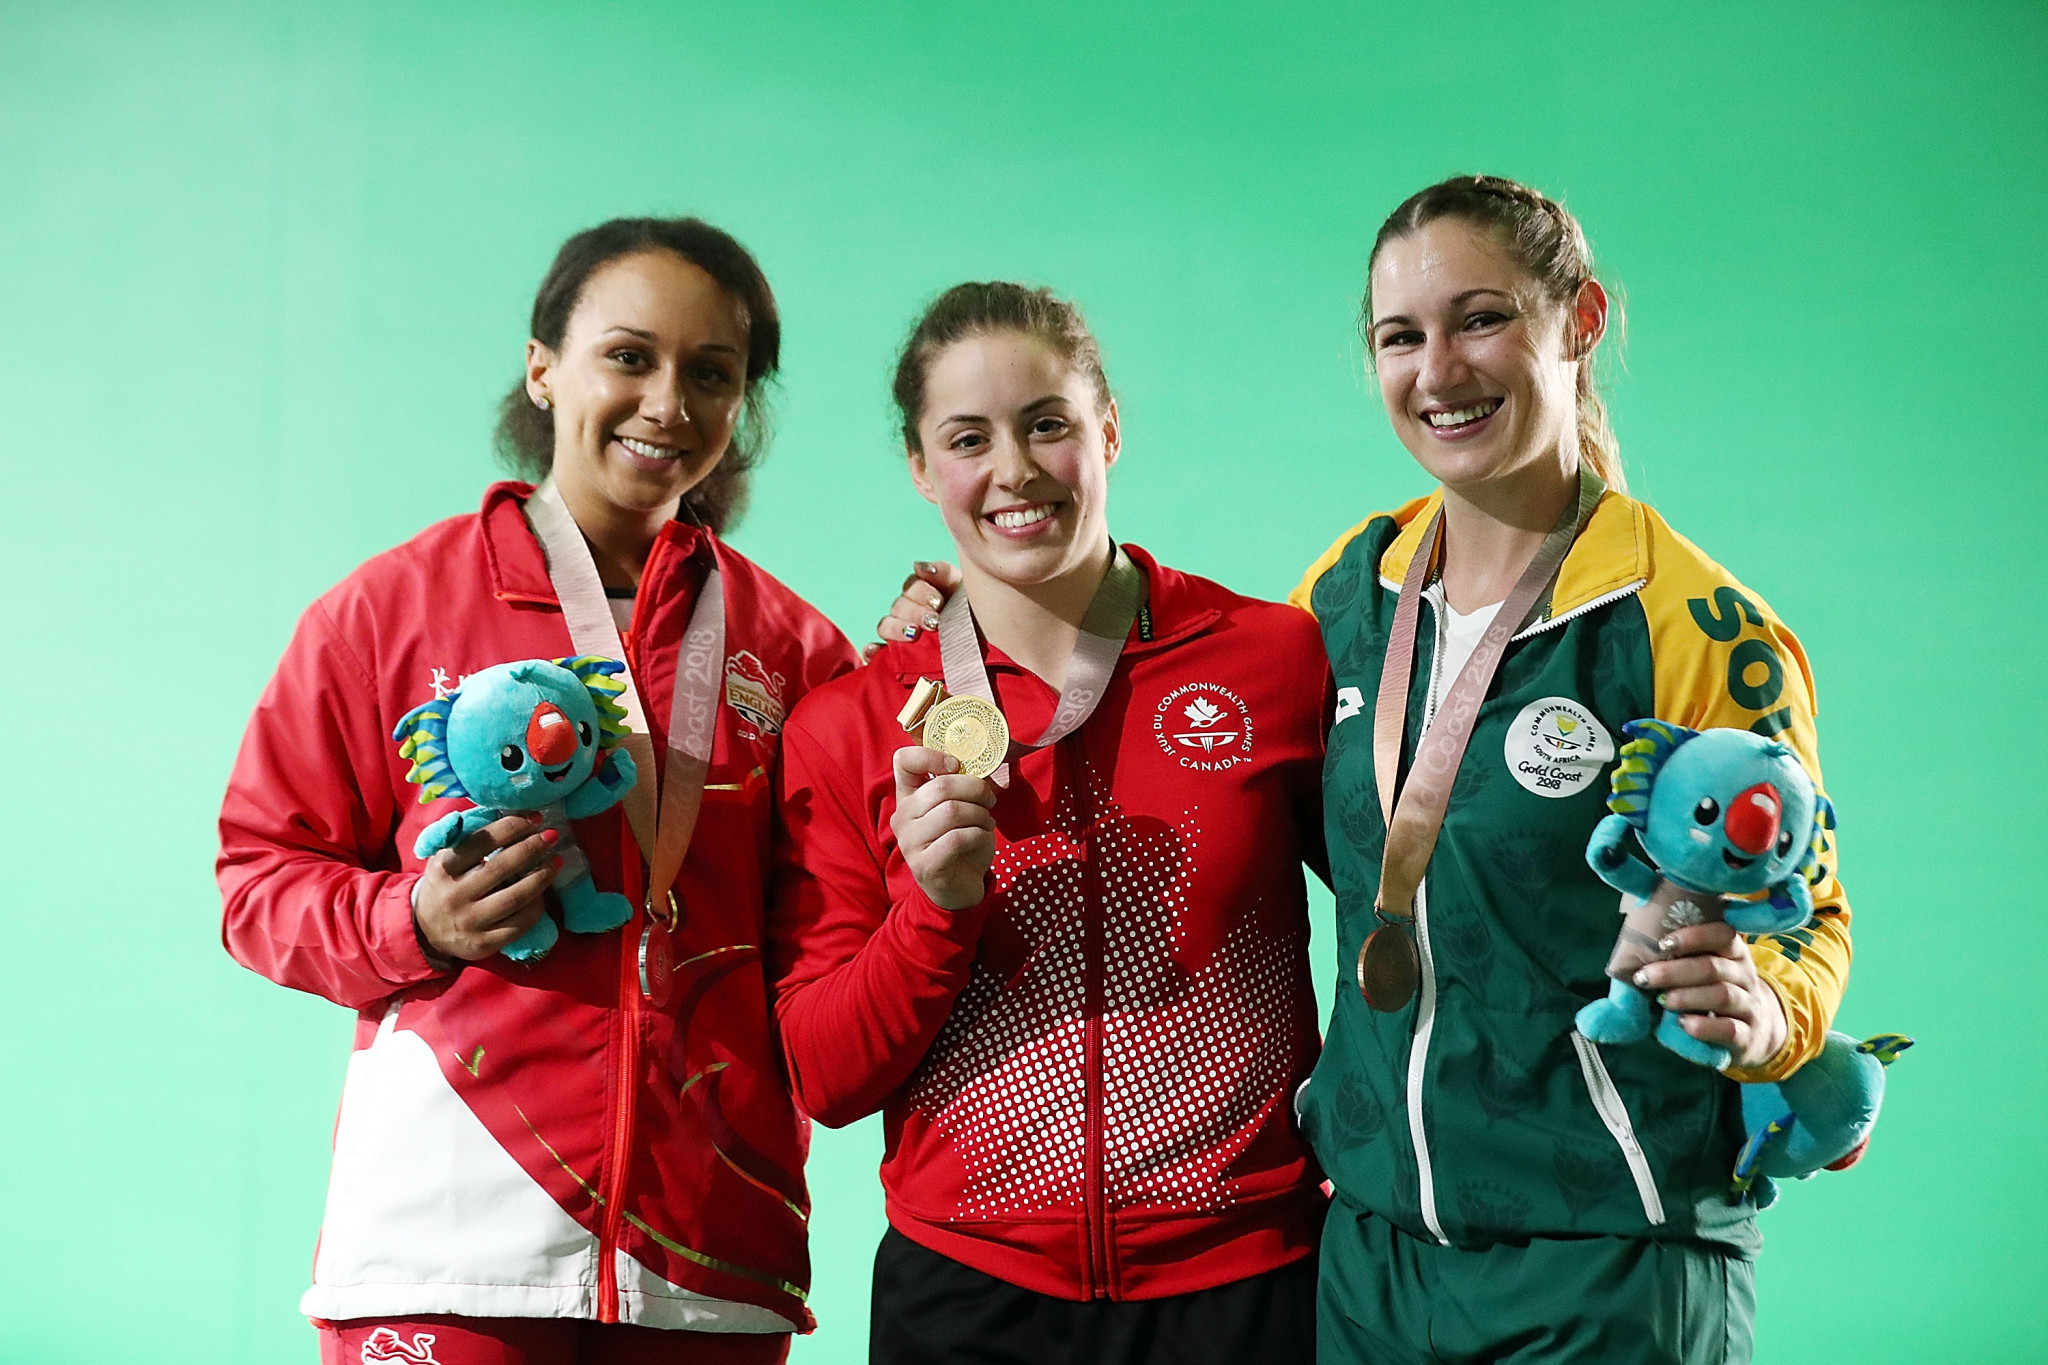 Maude Charron, centre, won gold at the 2018 Commonwealth Games ©Getty Images